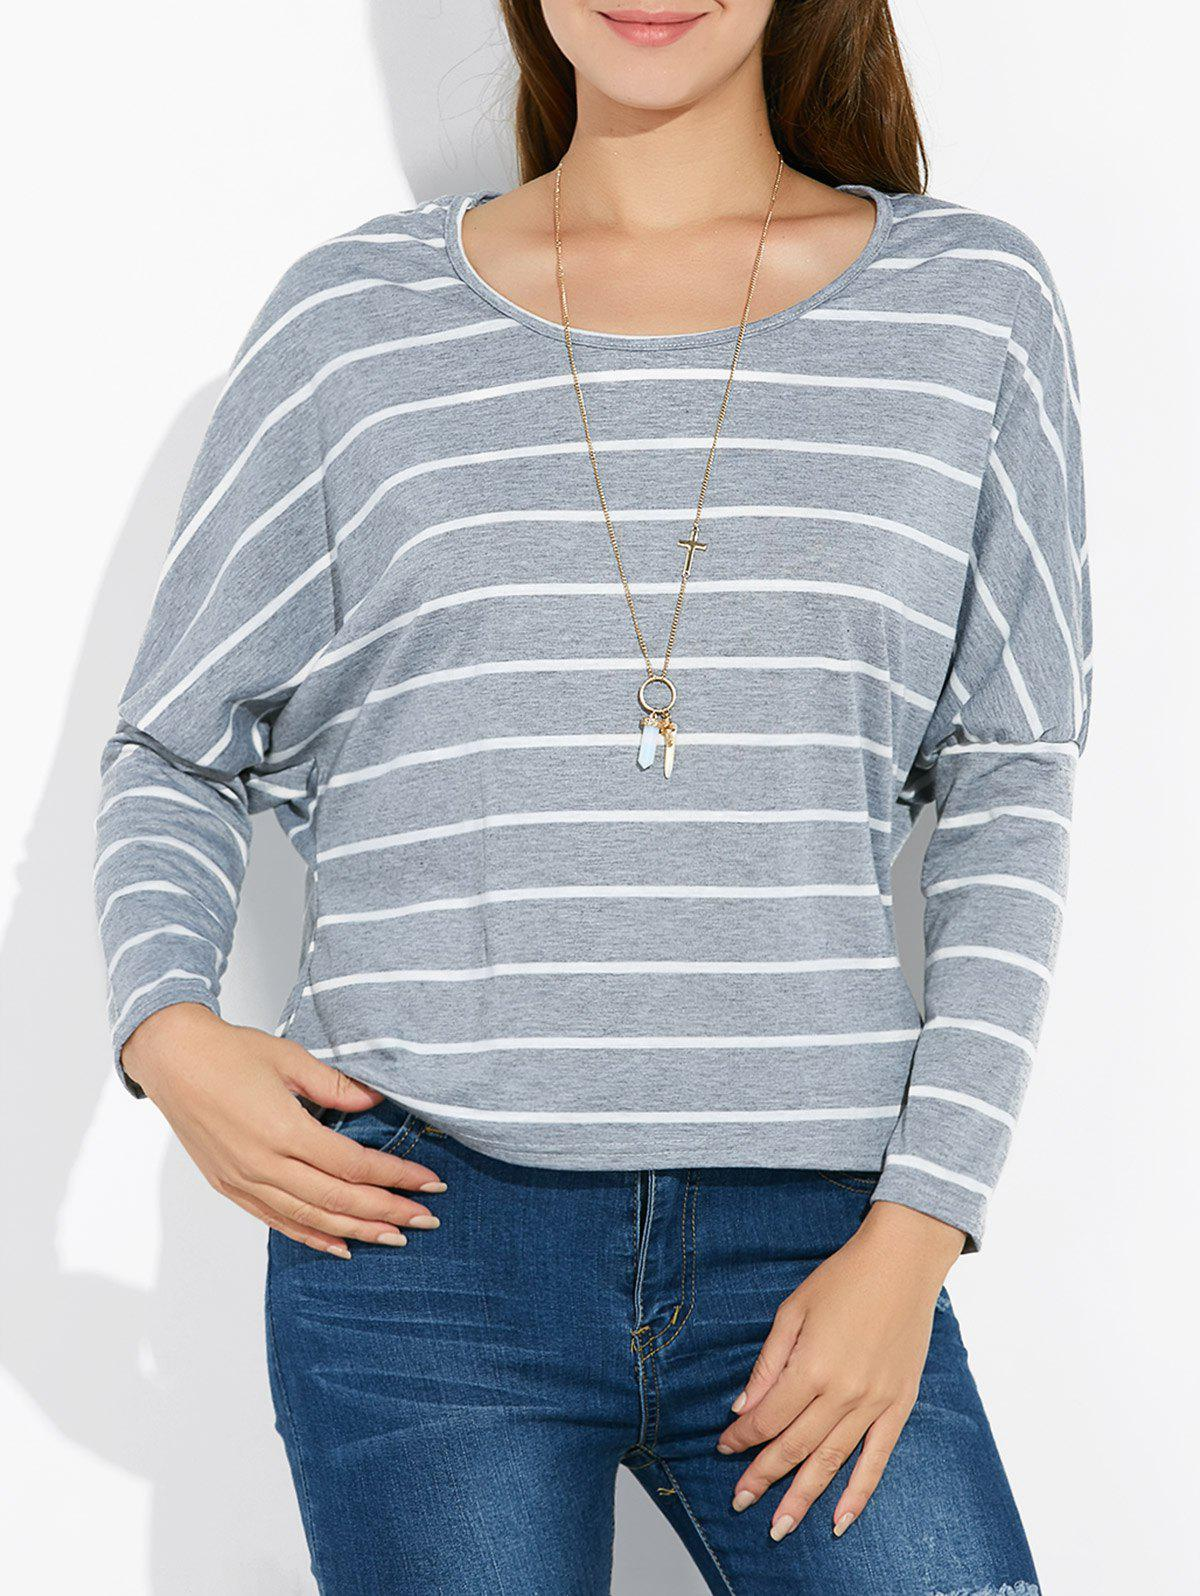 Batwing Sleeve Striped Tee - GRAY M